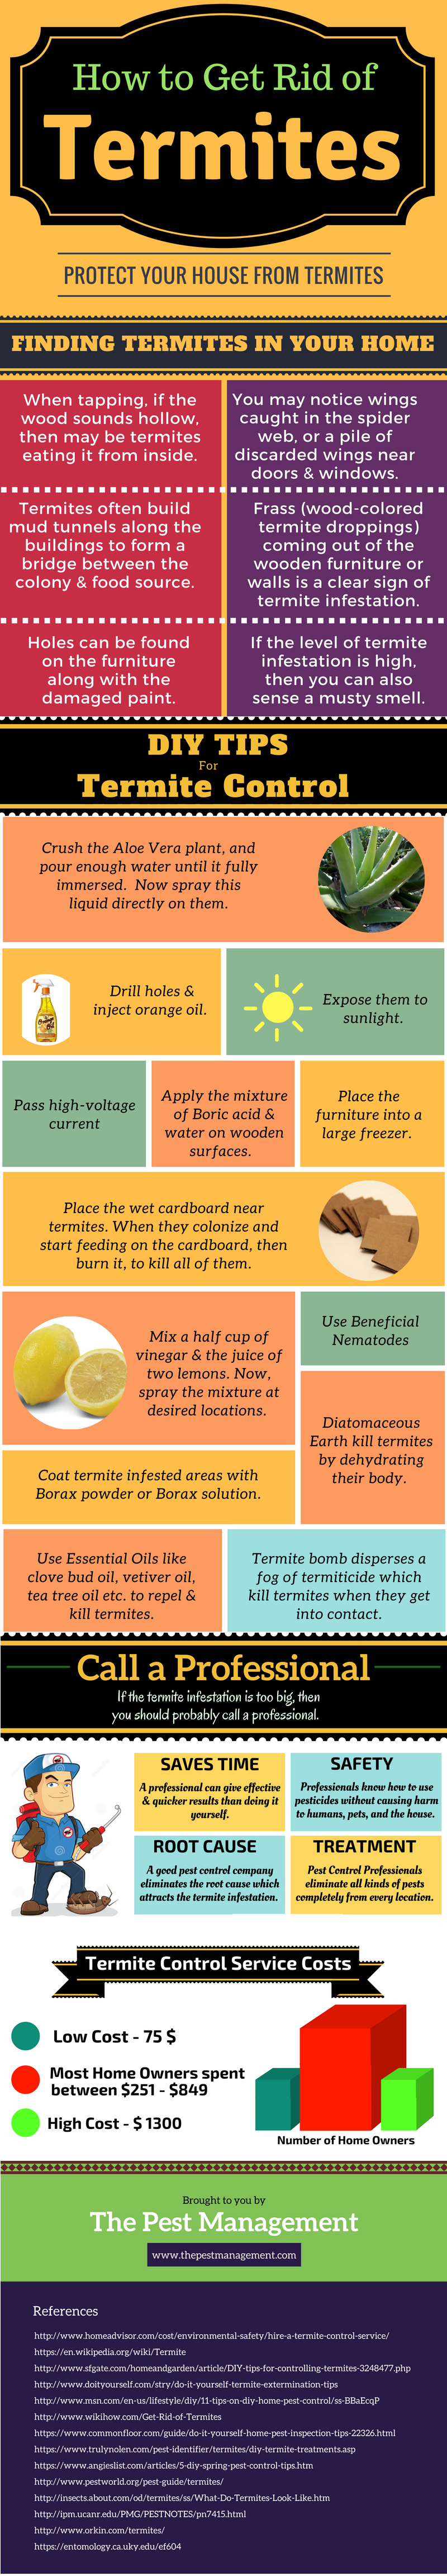 How To Get Rid Of Termites A Complete Guide With Infographic Termites Termite Control Termites Diy